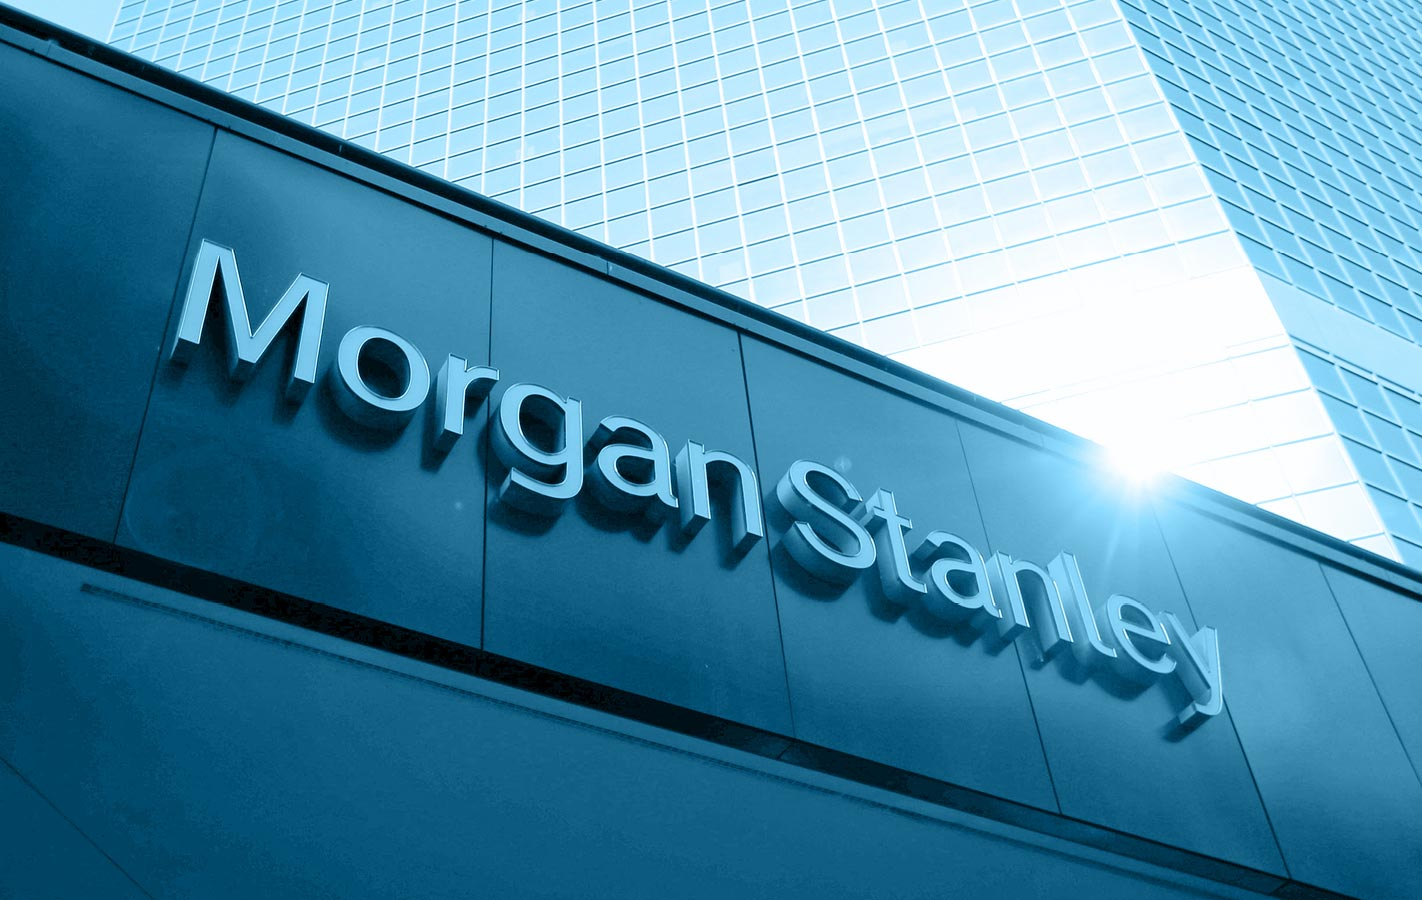 Morgan Stanley Q1 Earnings Call Breakdown